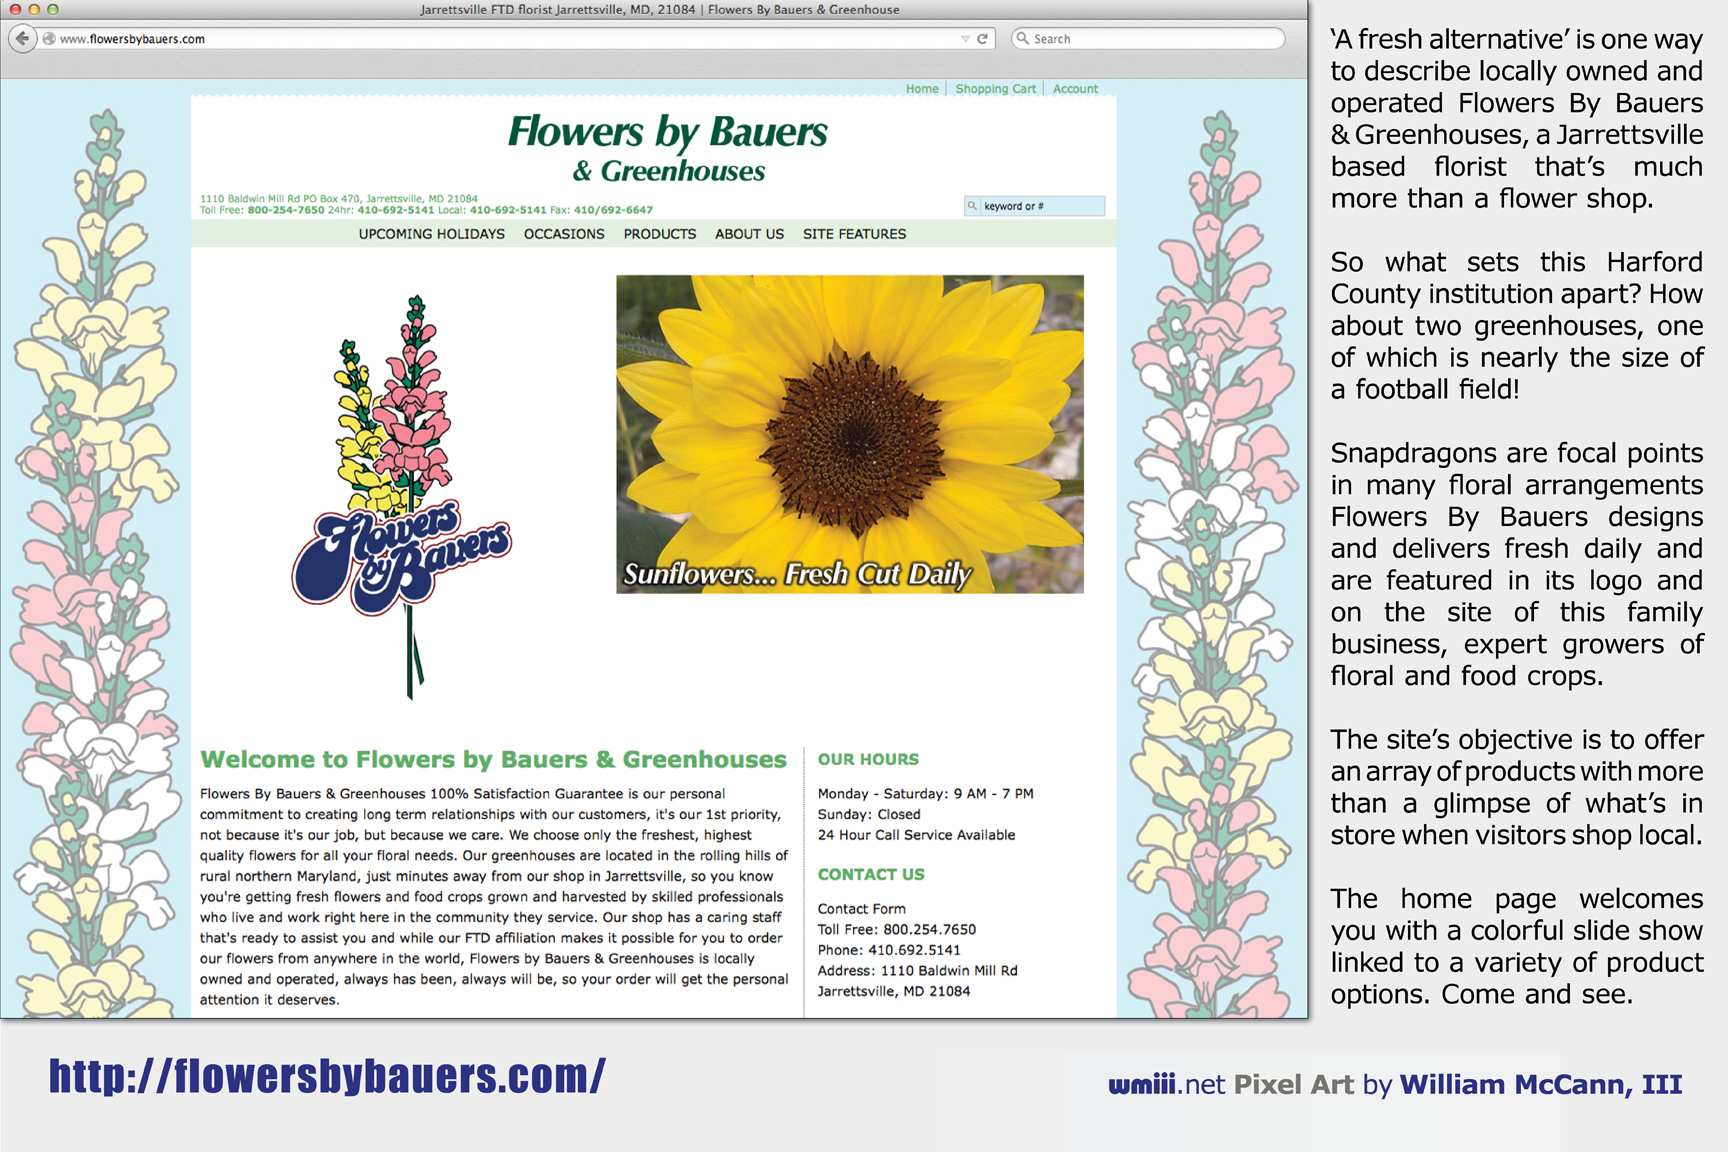 Flowers by Bauers & Greenhouses